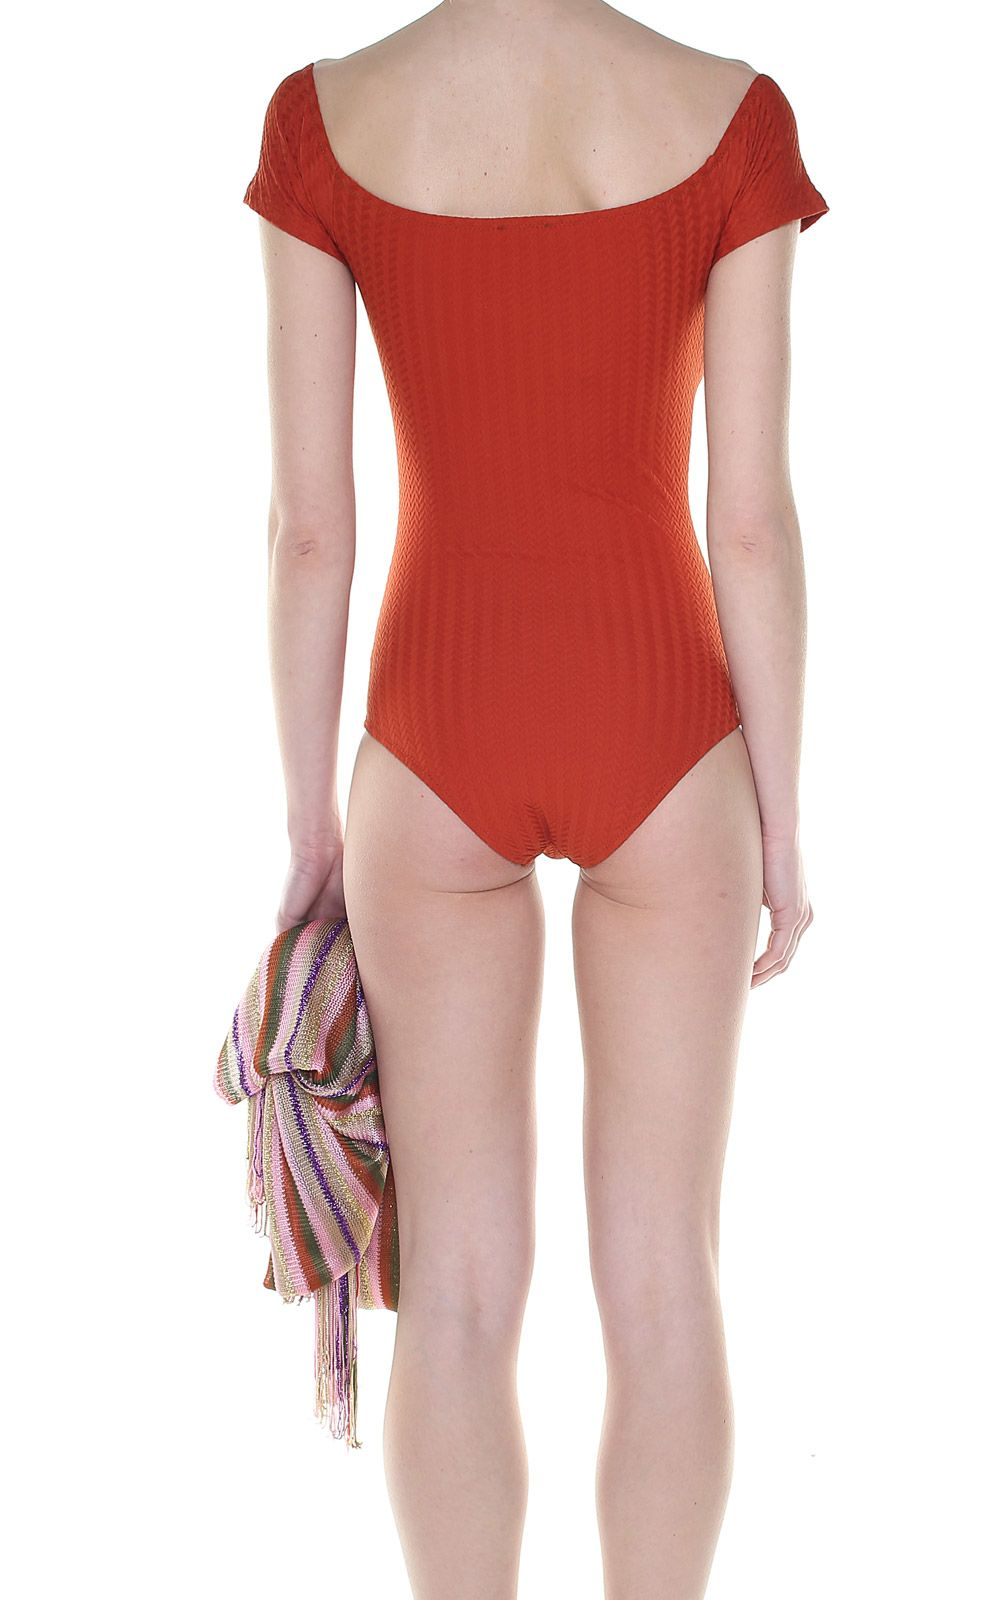 Helo fishbone off-the-shoulder swimsuit Mimì à la Mer Quality Free Shipping For Sale Clearance Store Outlet With Credit Card hqUMOVsRw